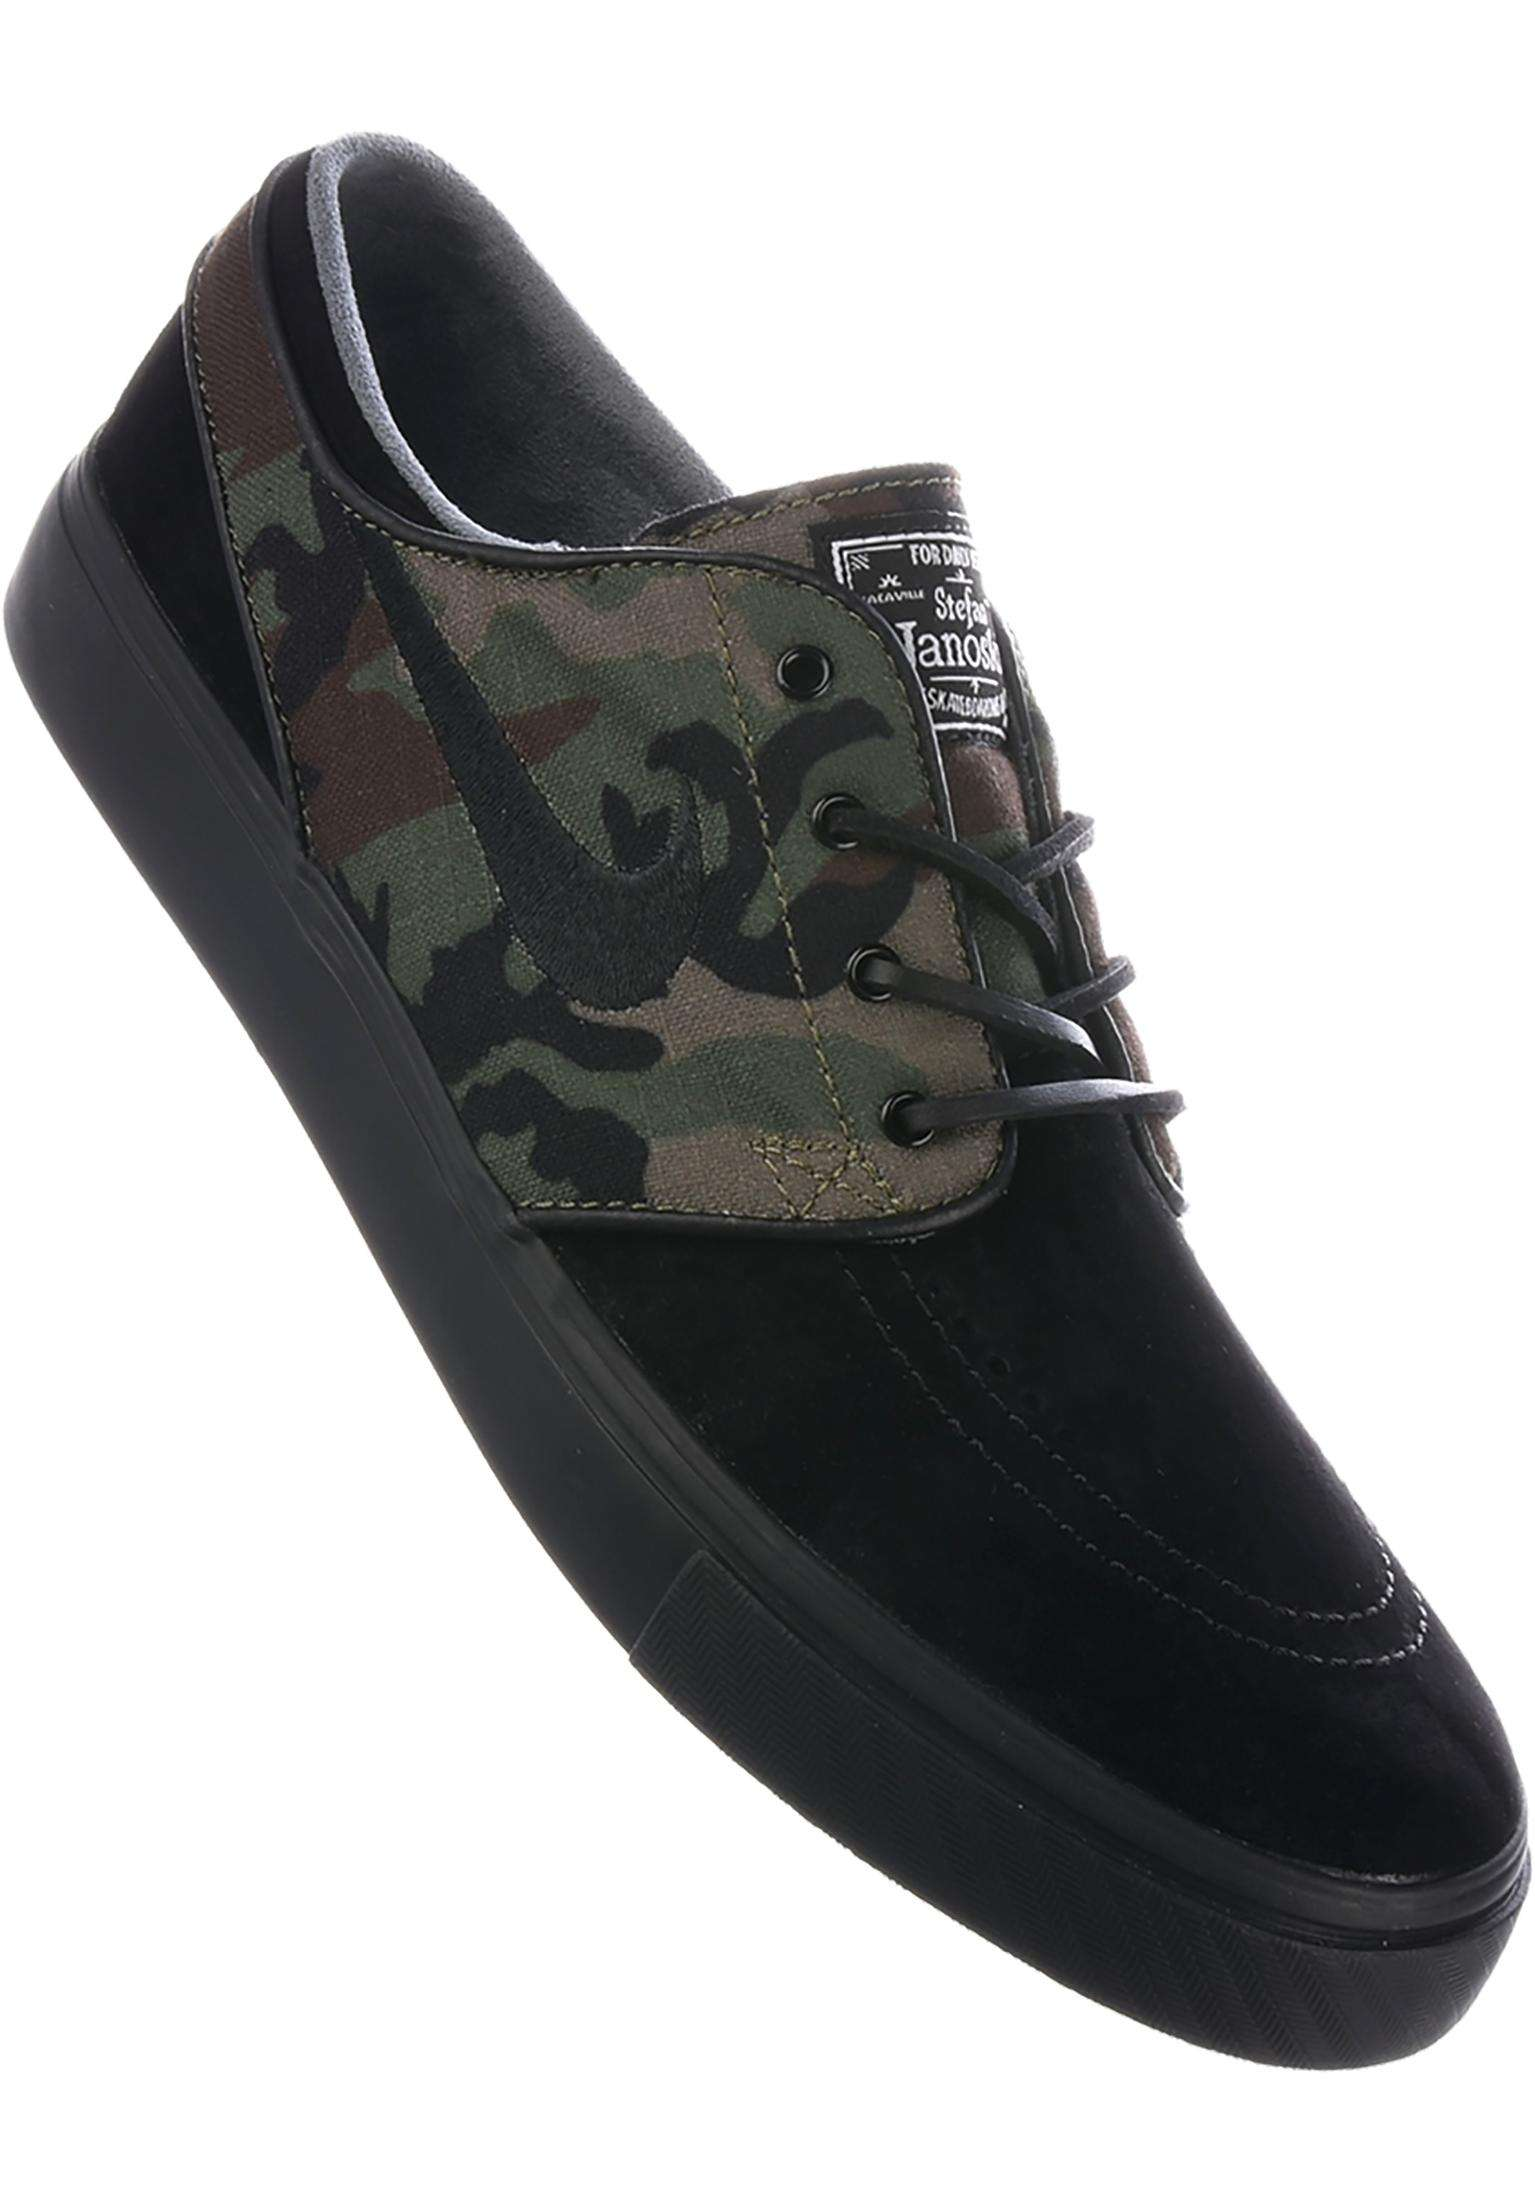 best sneakers d2e7b 194ae Zoom Stefan Janoski OG Nike SB All Shoes in black-black-mediumolive for Men    Titus